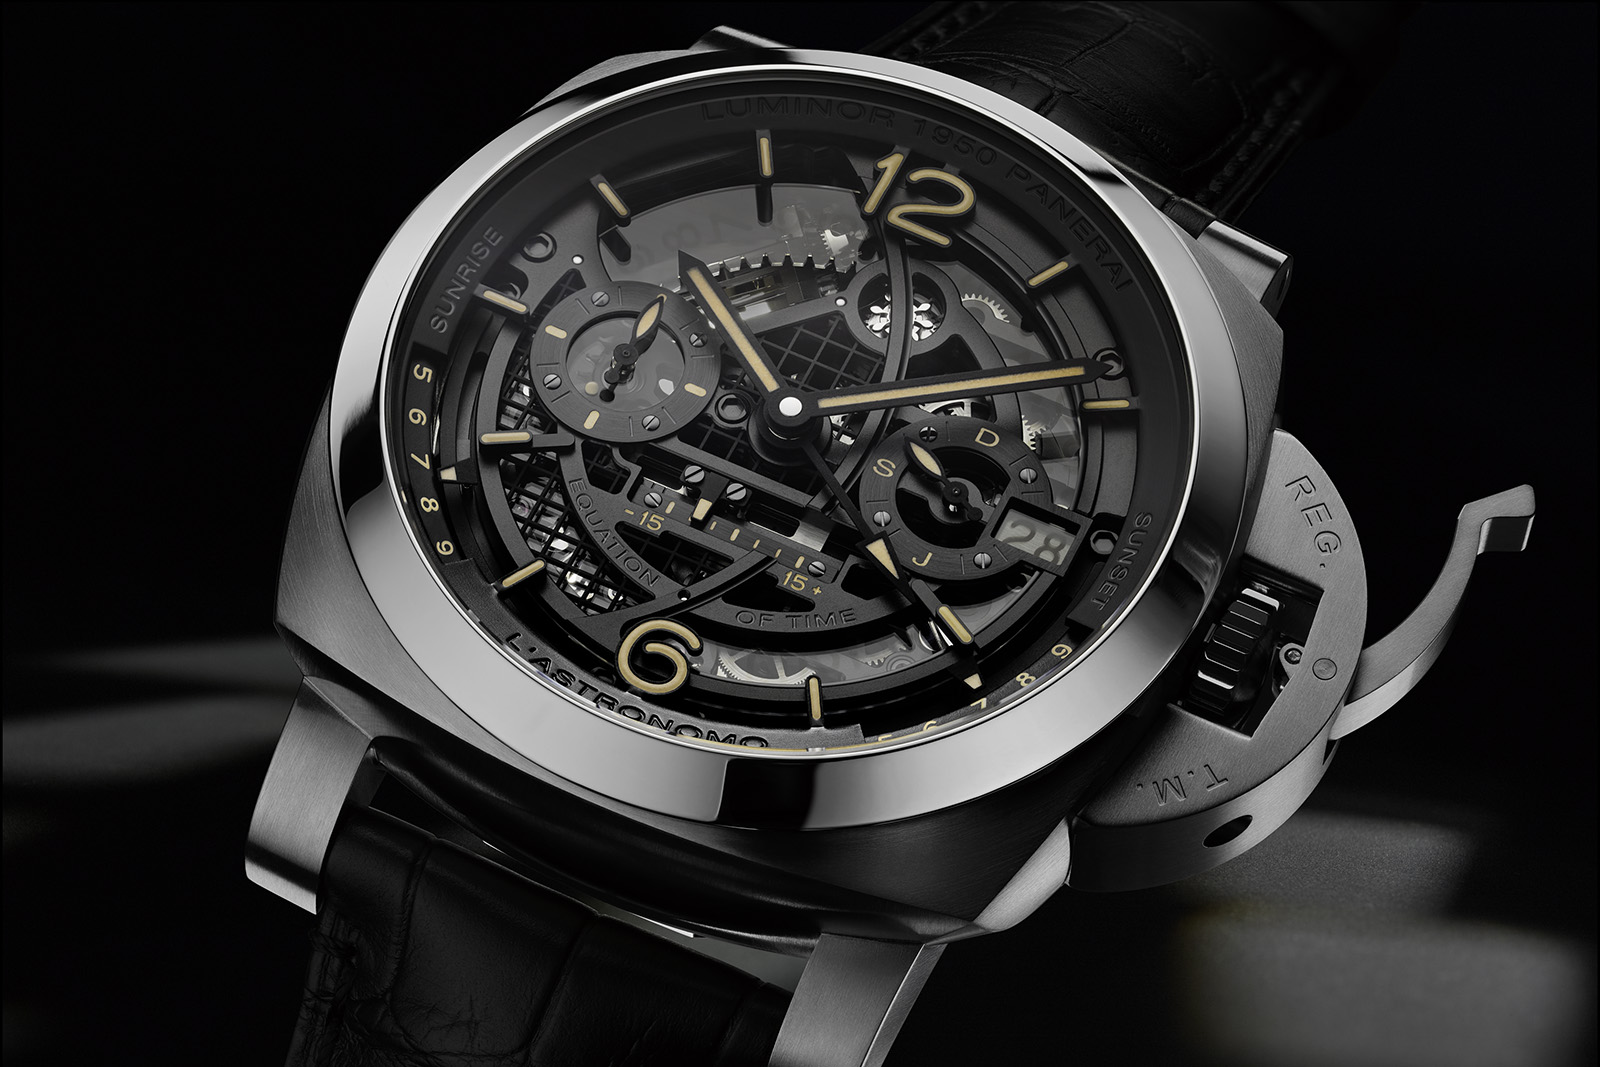 Panerai L'Astronomo – Luminor 1950 Tourbillon Moon Phases Equation of Time GMT - PAM 920